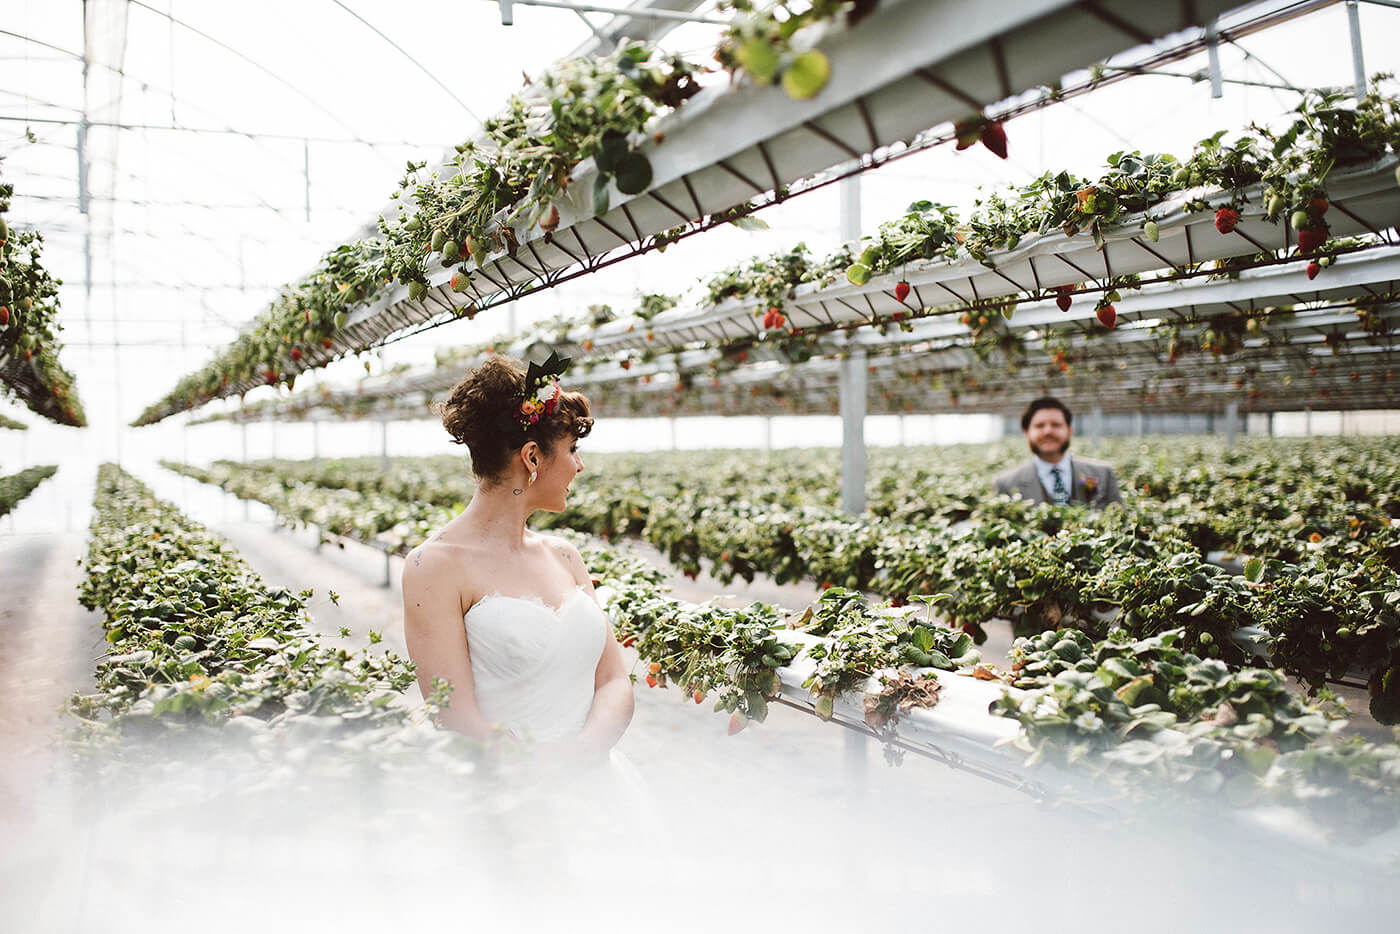 roma-organizacao-eventos-editorial-mid-century-modern-wedding-in-a-strawberry-field-12